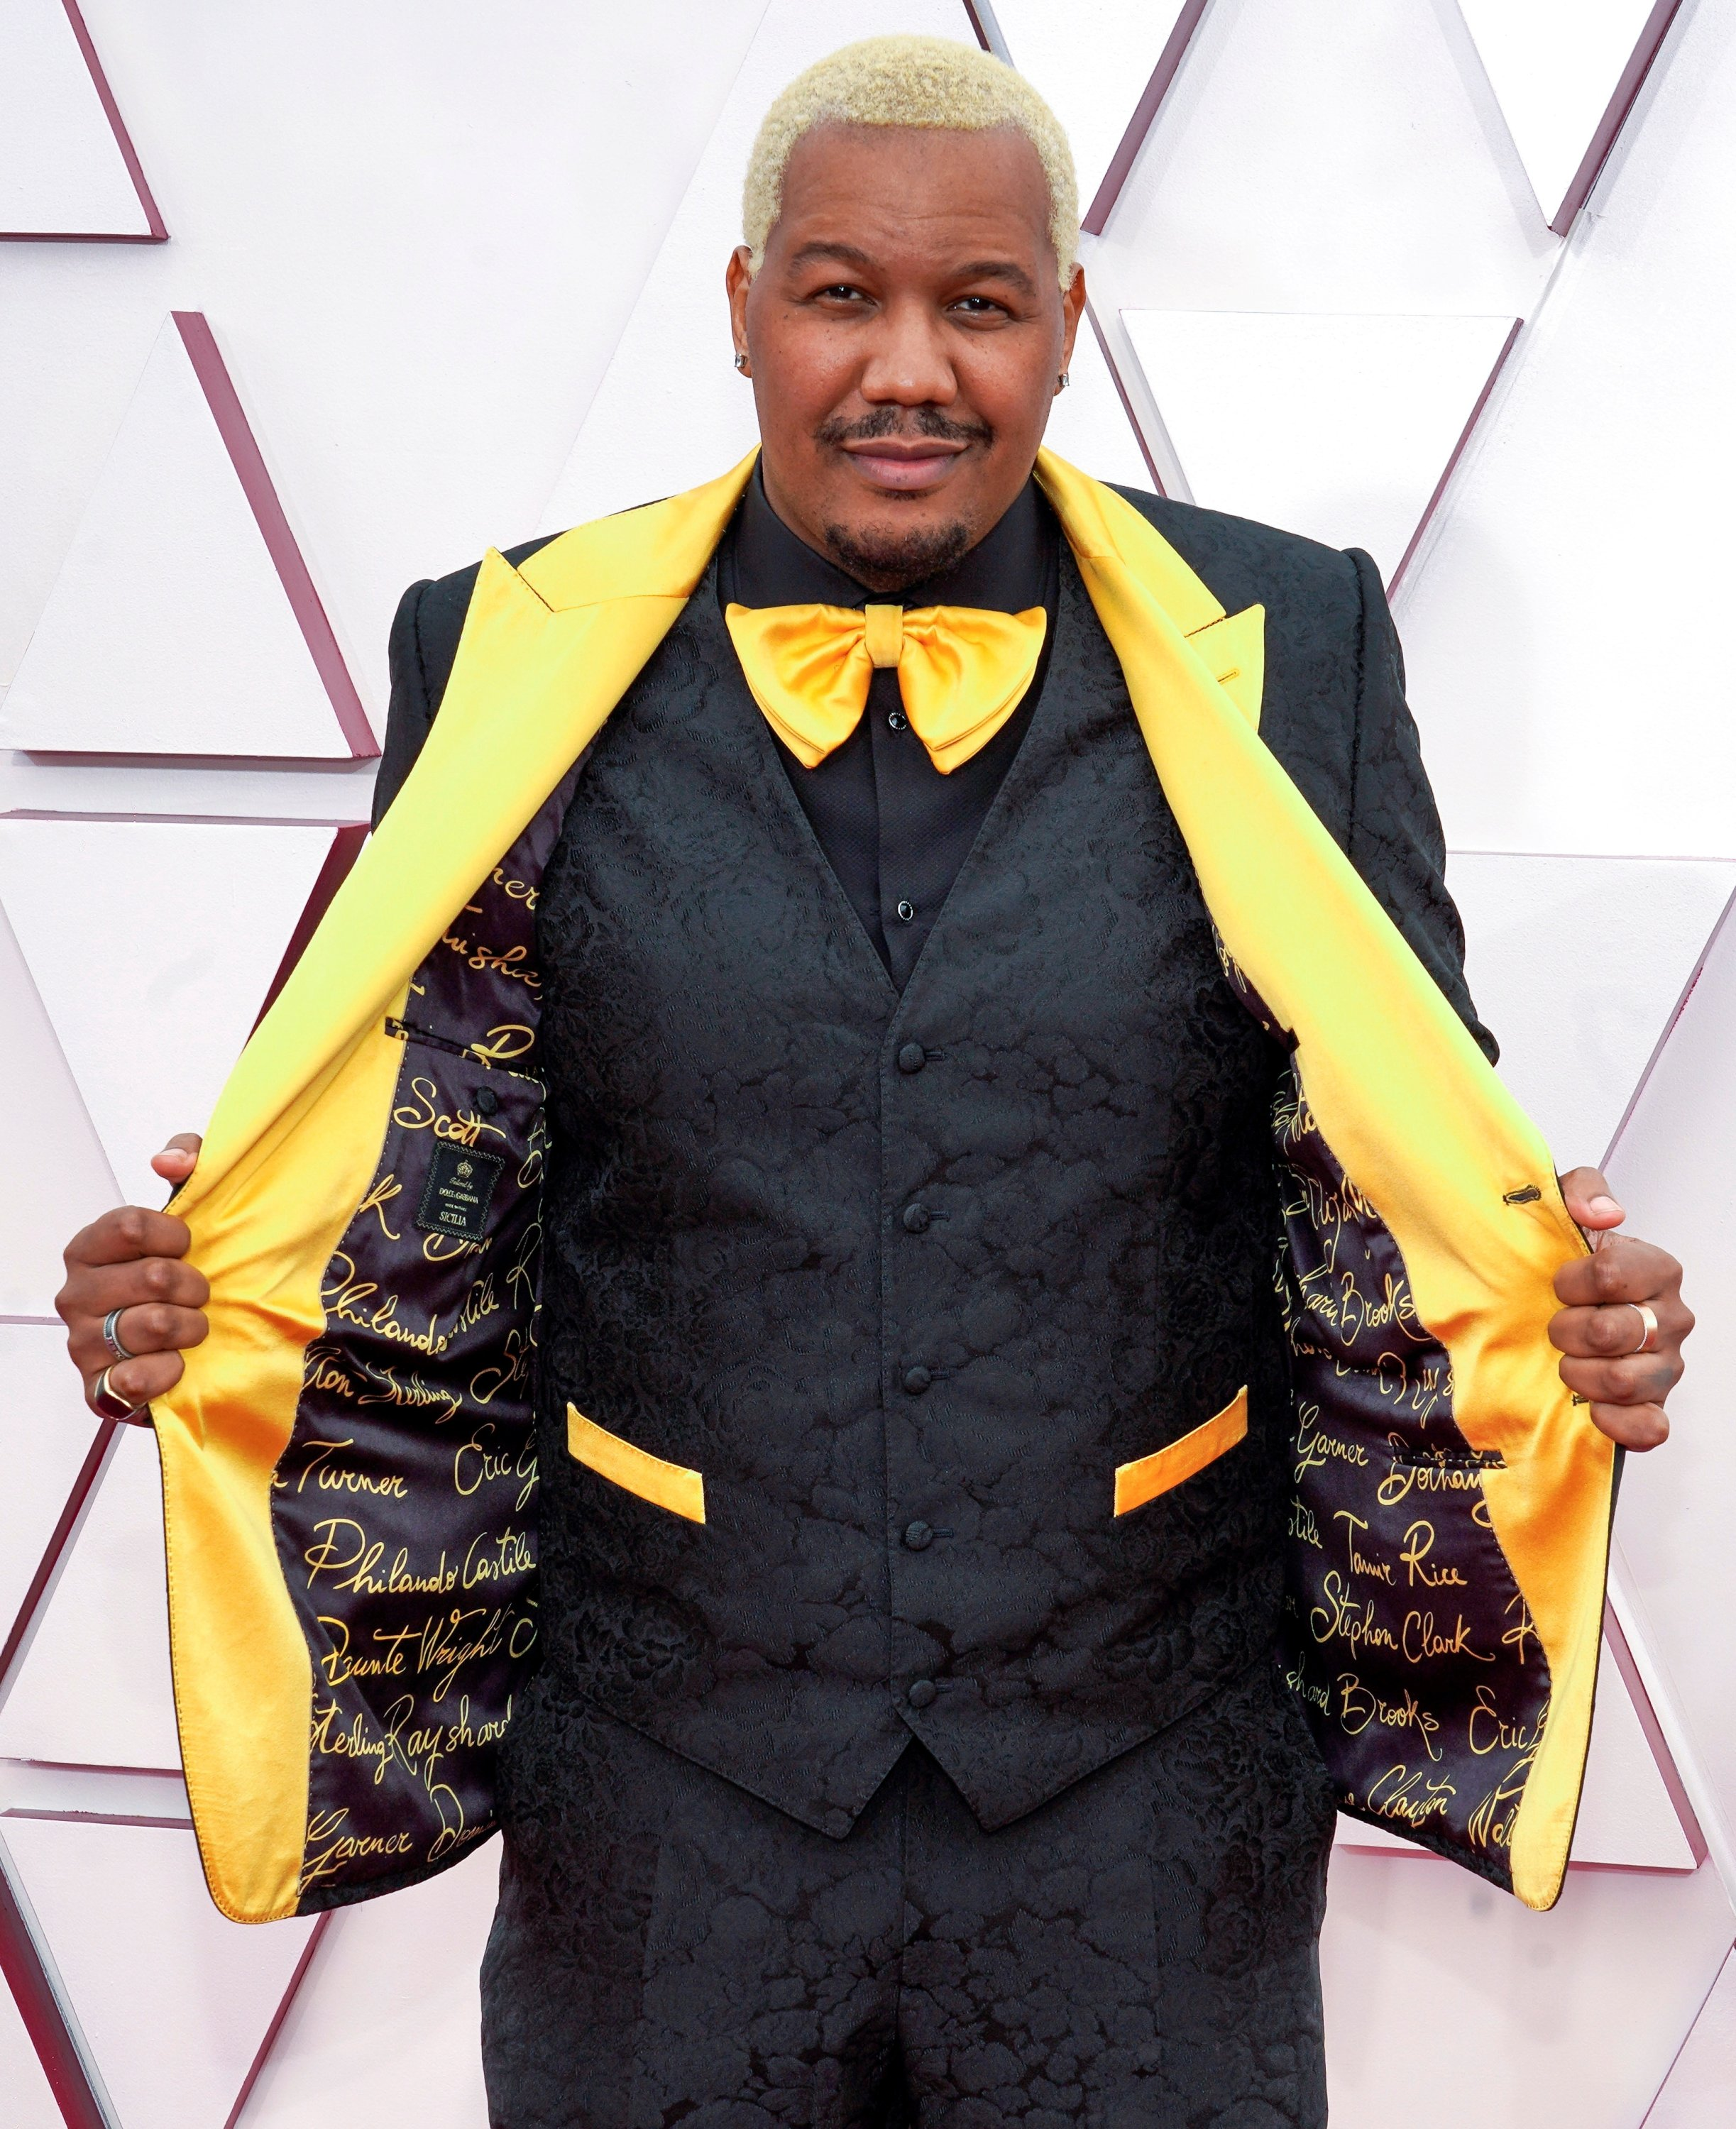 Oscar nominee Travon Free arrives at the Oscars red carpet for the 93rd Academy Awards in Los Angeles, California, U.S., April 25, 2021. (REUTERS Photo)